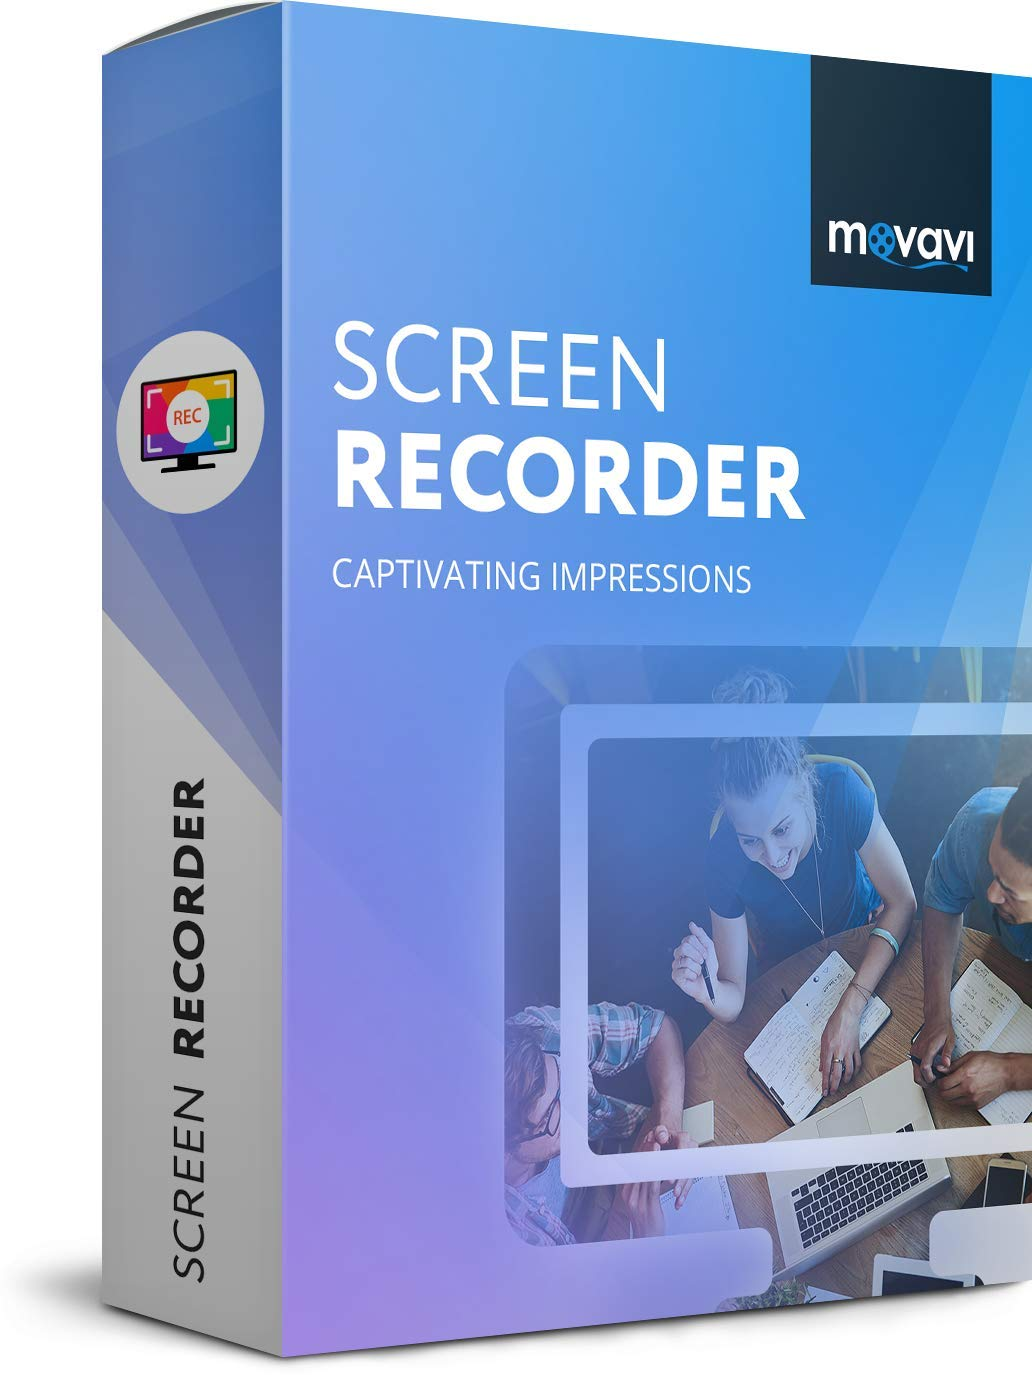 Screen Recorder 10 [PC Download] by Movavi Software Inc